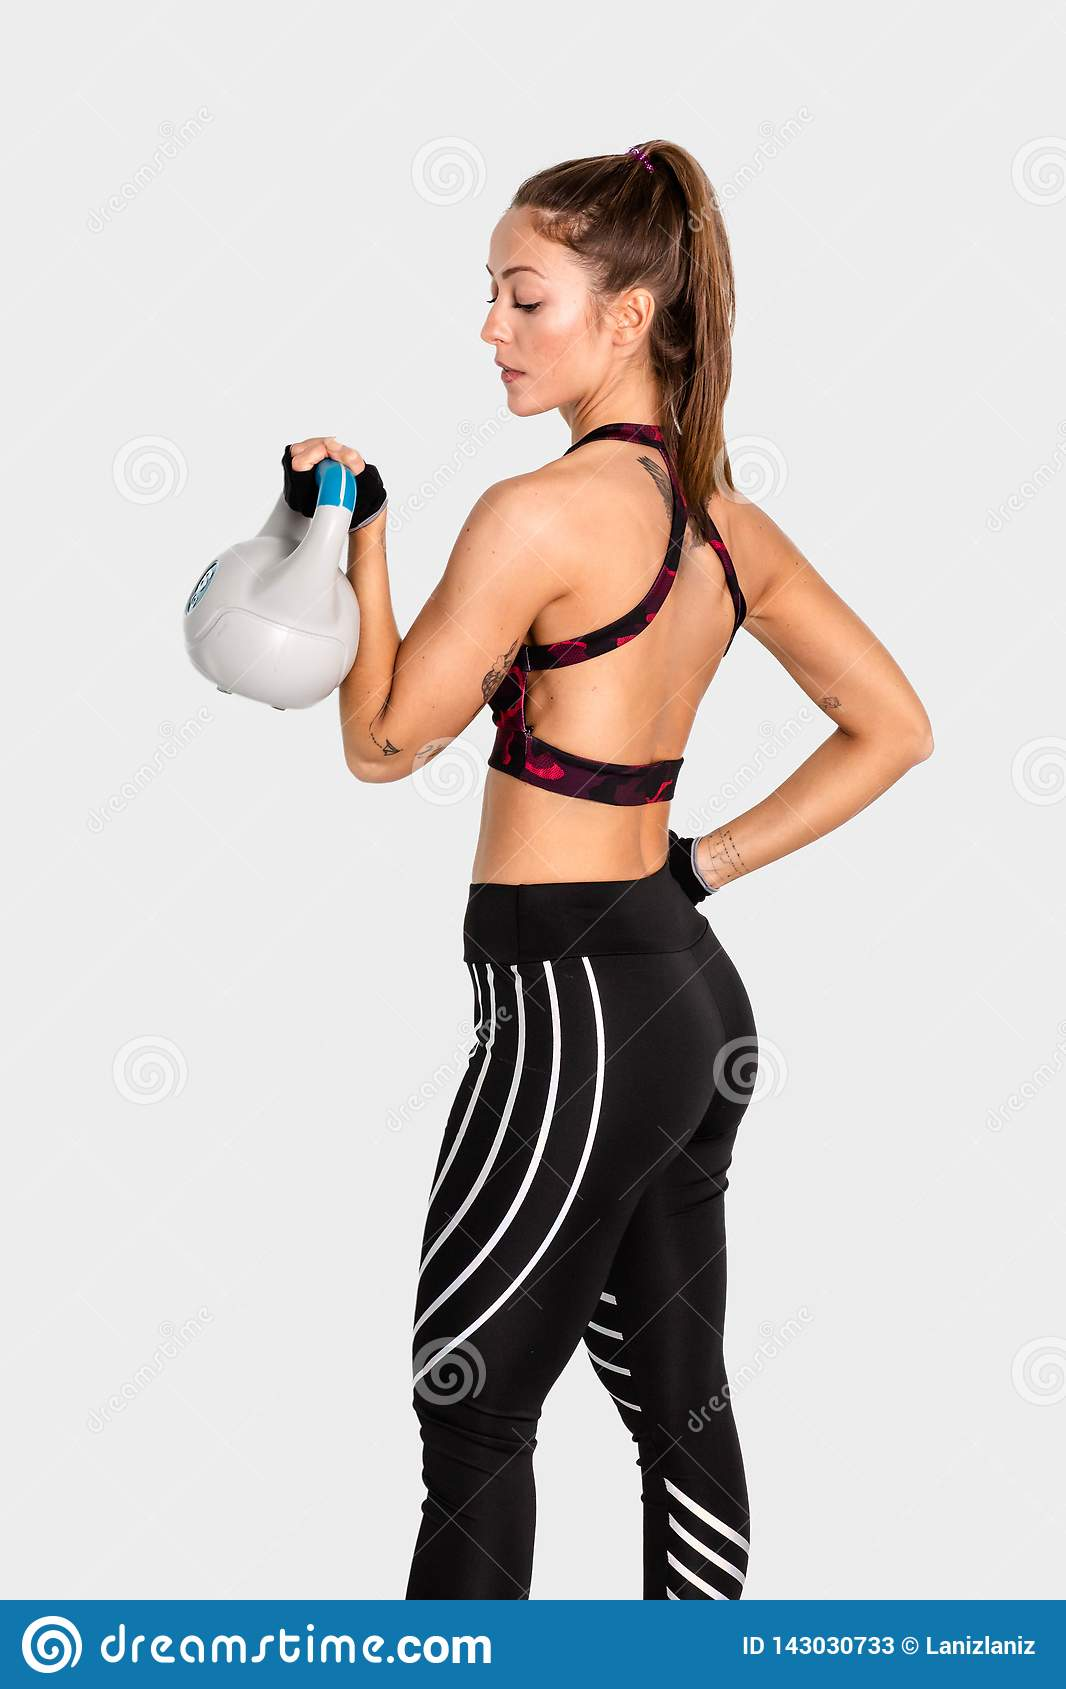 Attractive young with muscular body exercising crossfit. Woman in sportswear doing crossfit workout with kettle bell. Image